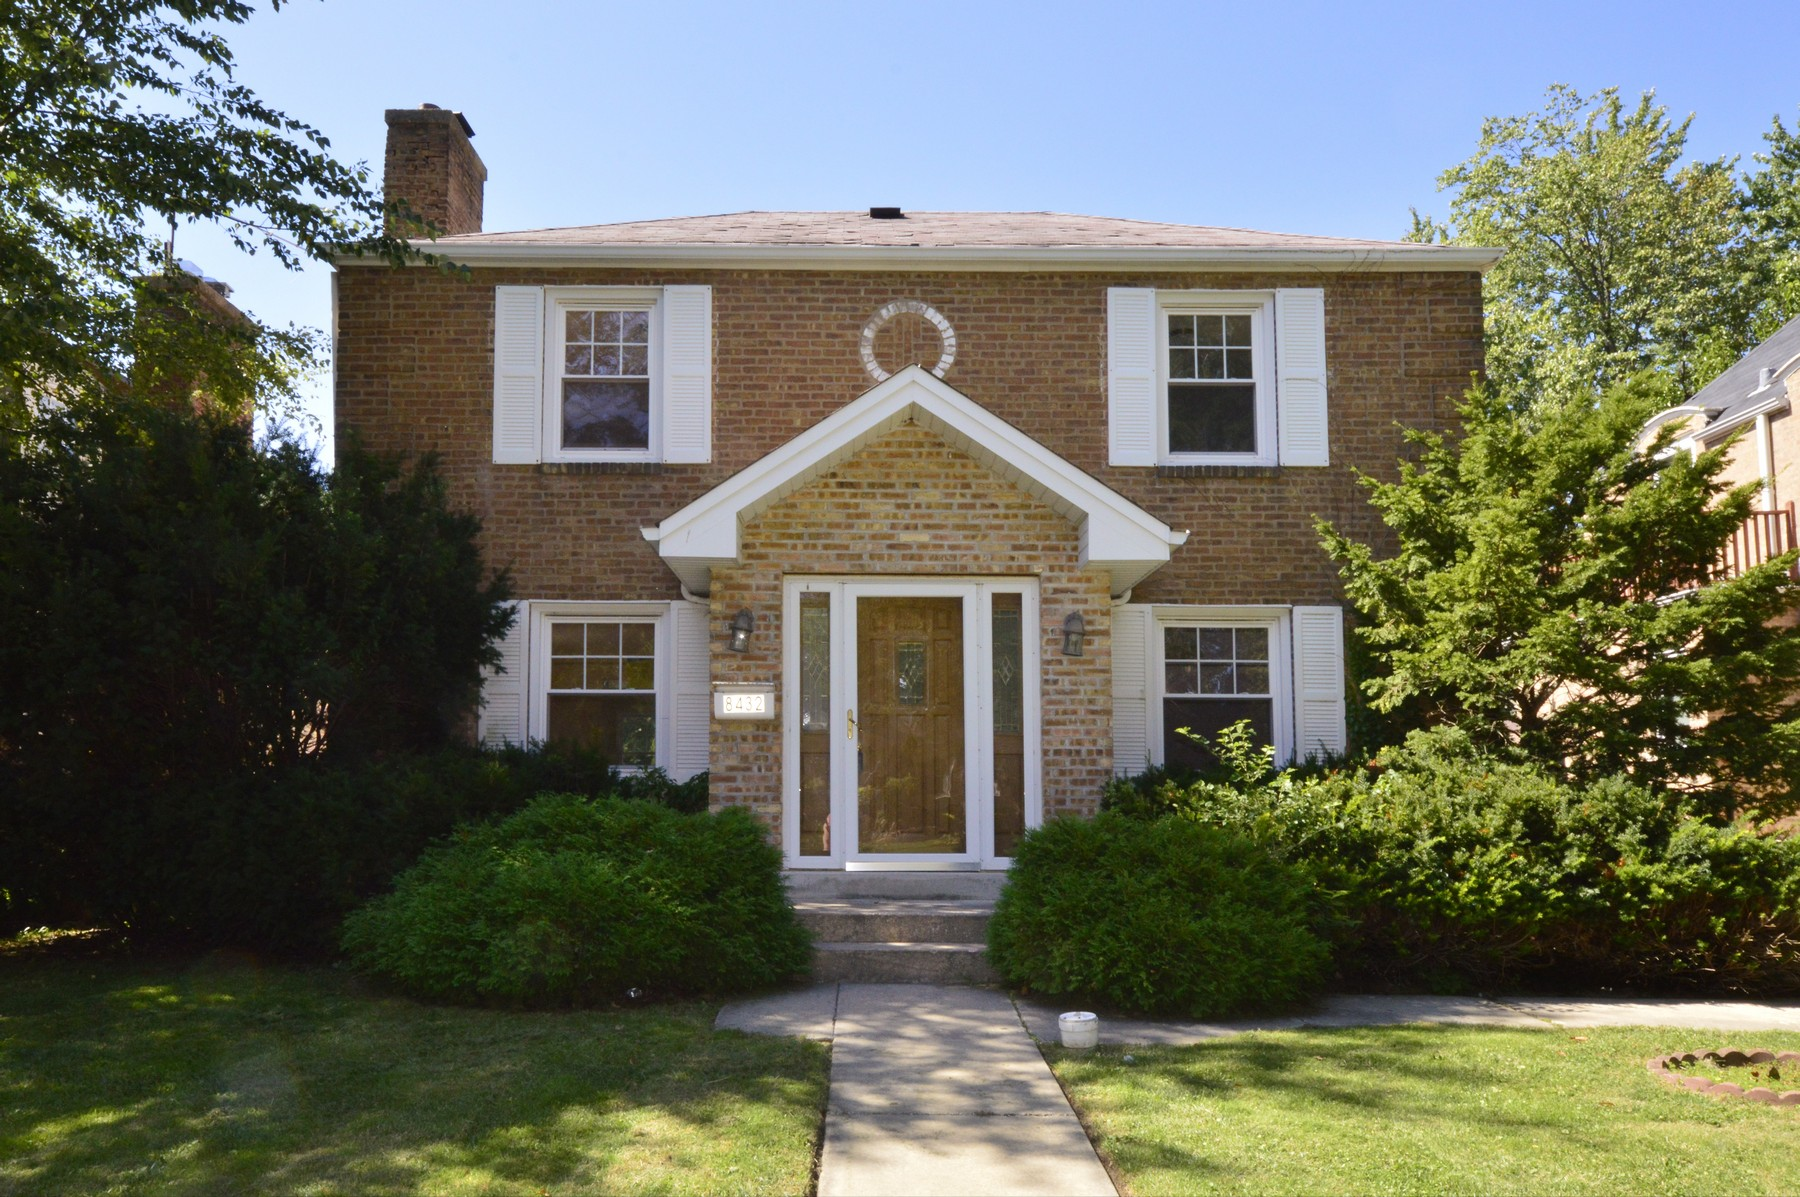 Property For Sale at Picturesque Center Entrance Colonial